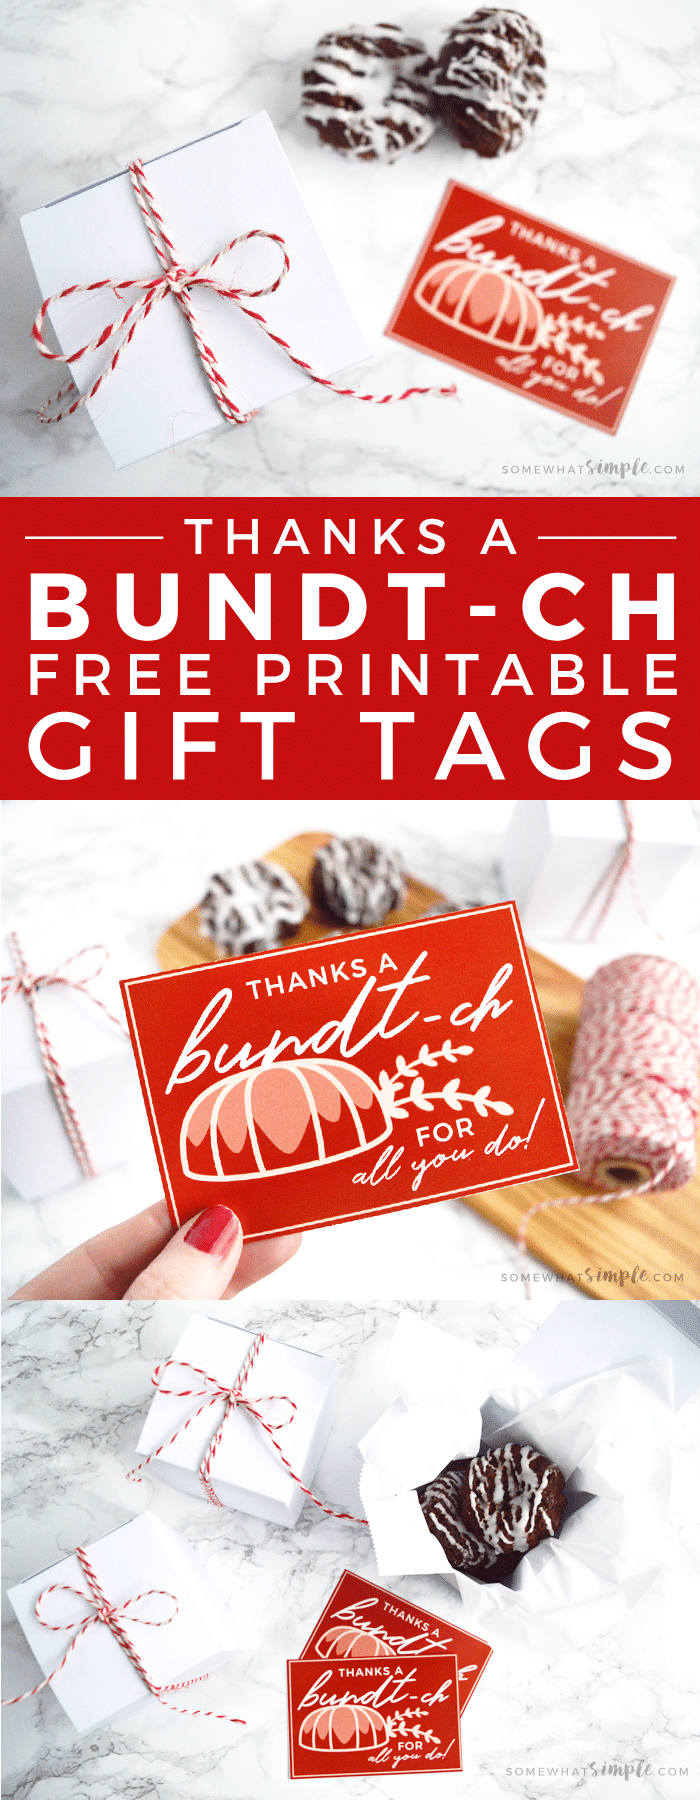 Our bundt cake thank you printables make fun gifts and are a SWEET way to say,